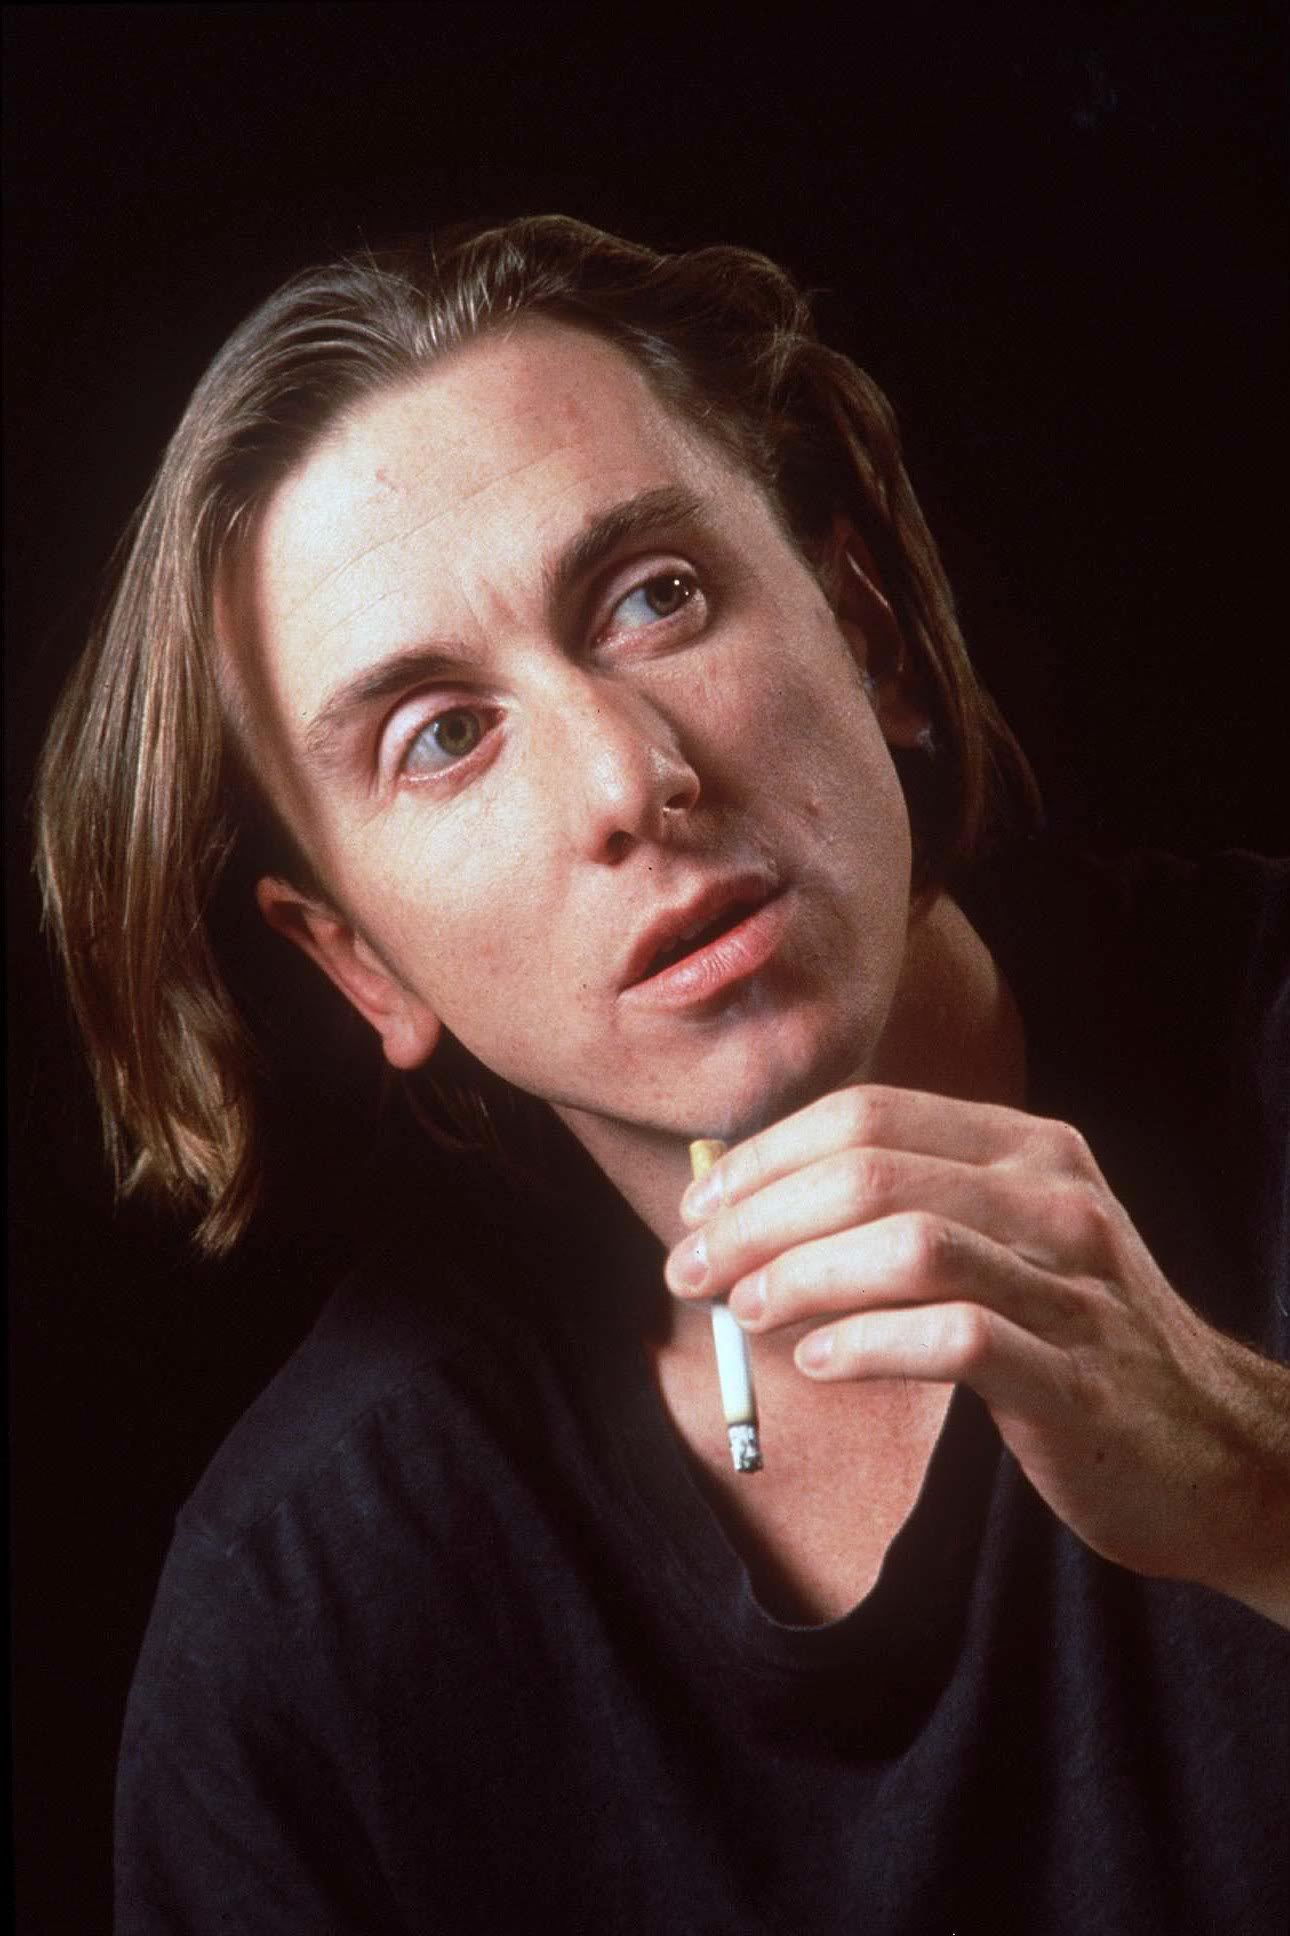 Tim Roth For mobile